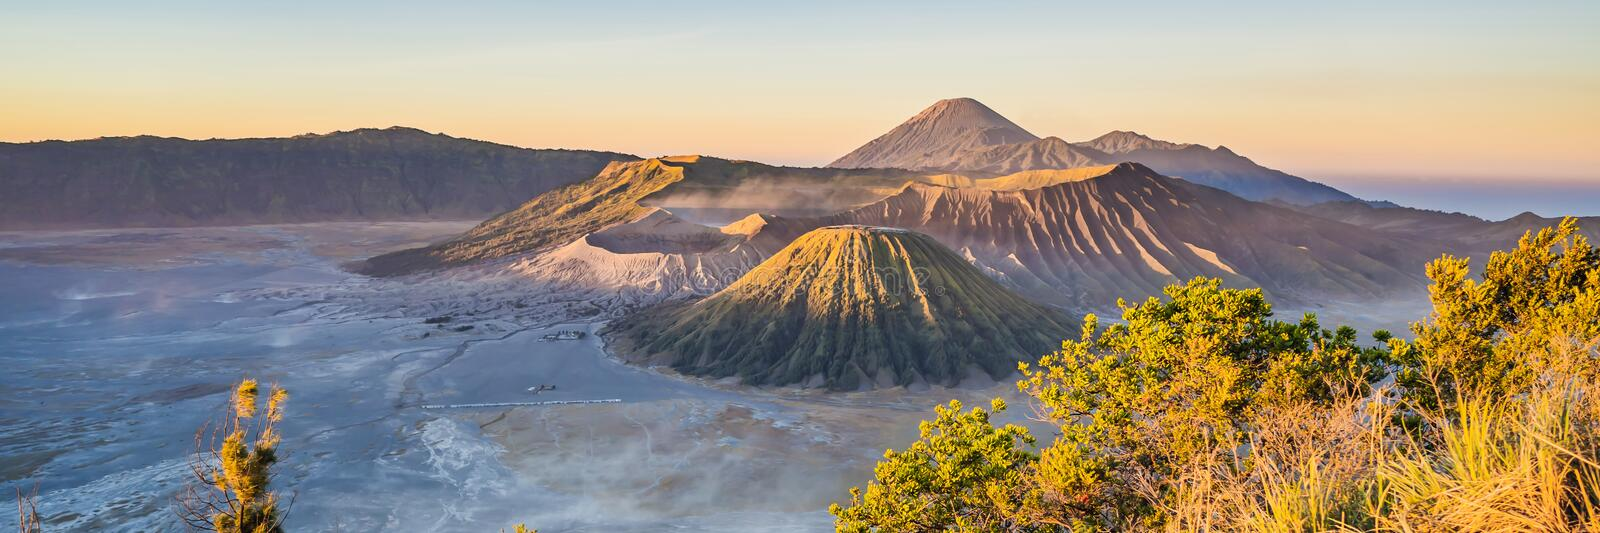 BANNER, LONG FORMAT Sunrise at the Bromo Tengger Semeru National Park on the Java Island, Indonesia. View on the Bromo. Or Gunung Bromo on Indonesian, Semeru stock photo